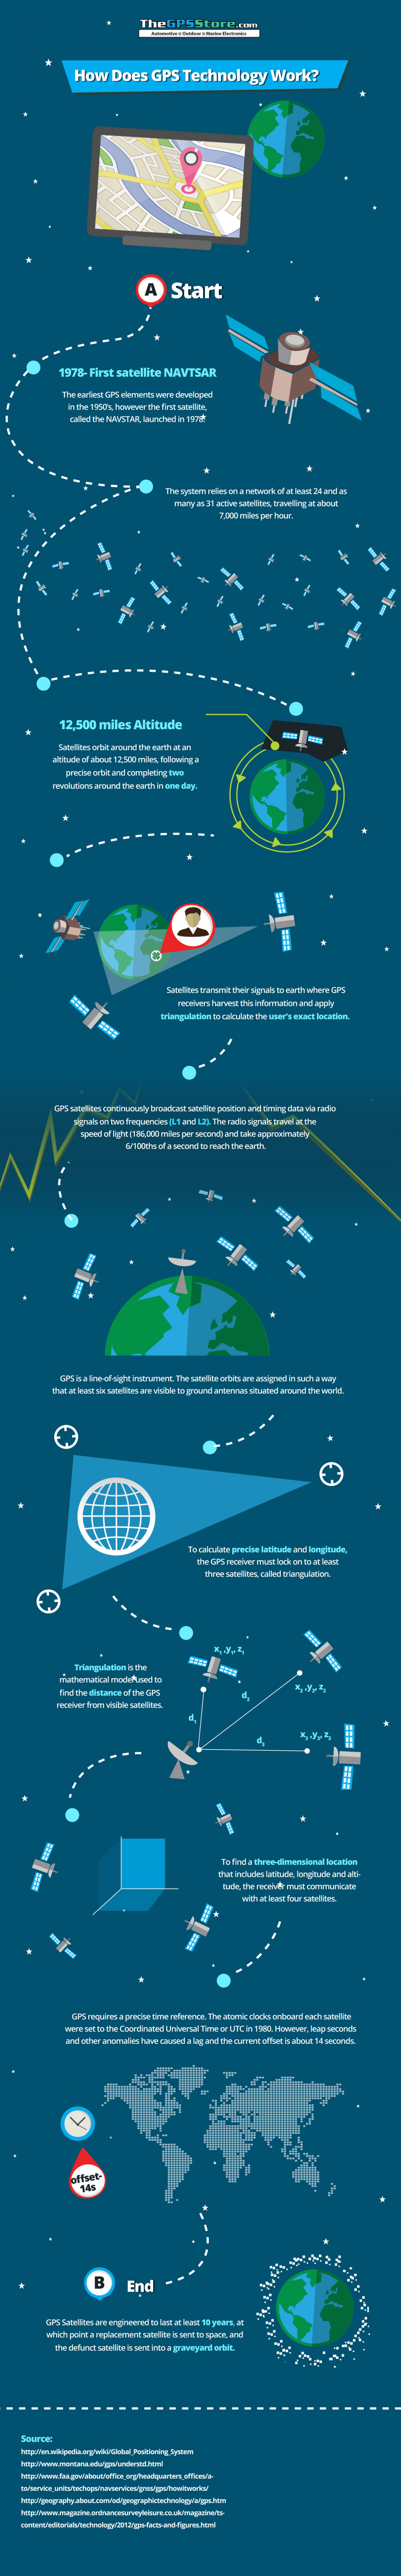 How Does GPS Technology Work? | Visual ly